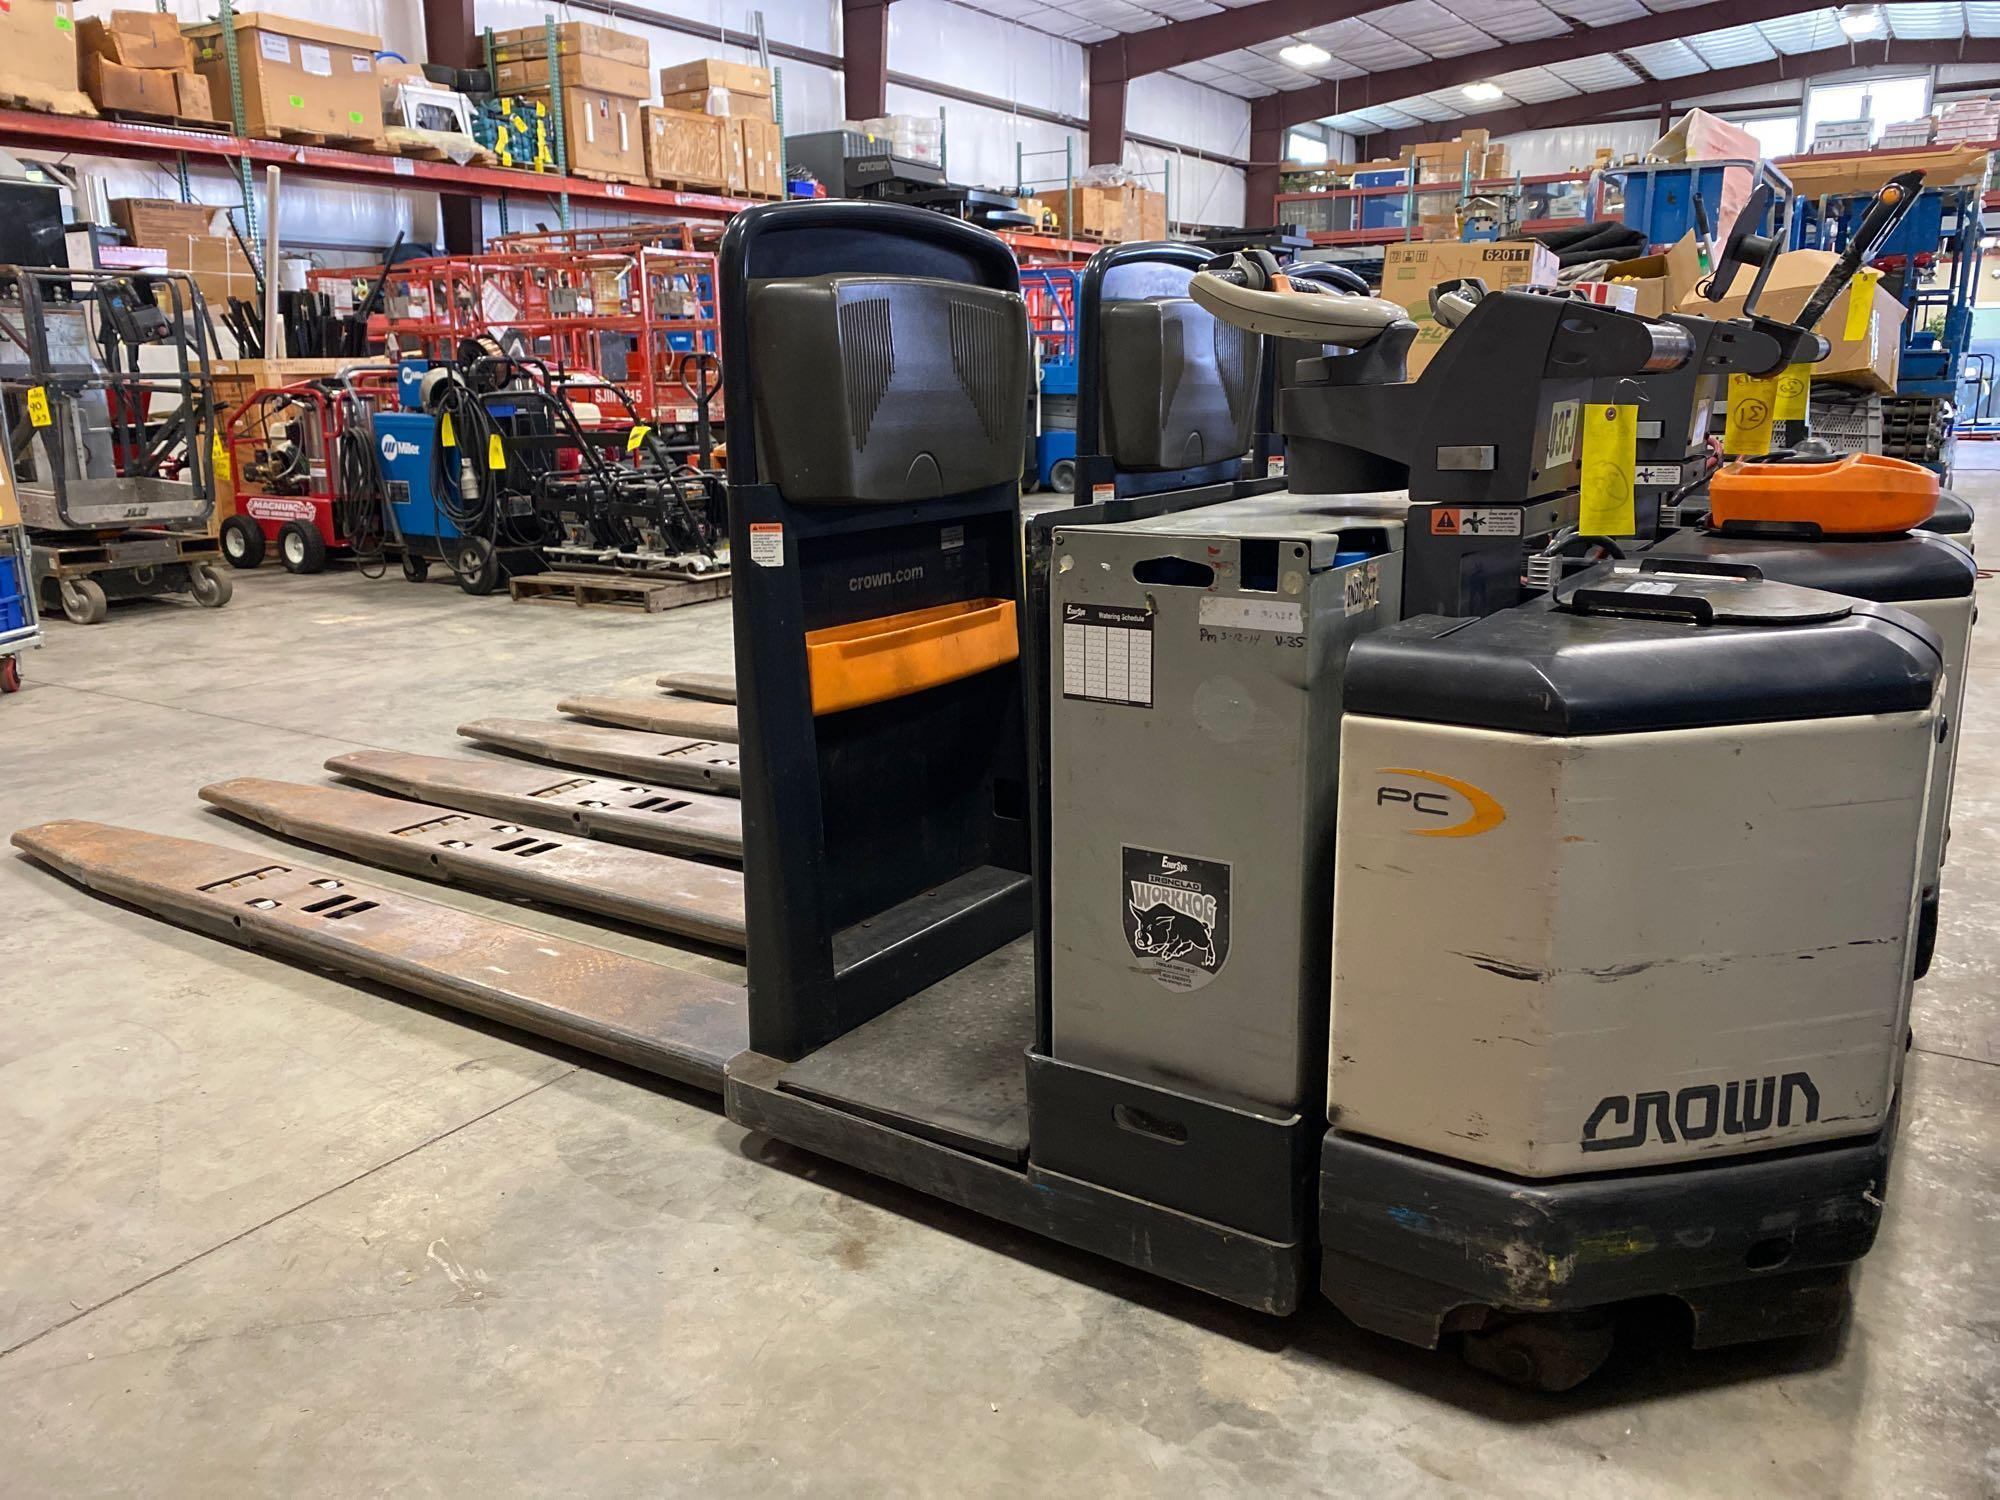 2012 CROWN ELECTRIC PALLET JACK, 8,000 LB CAPACITY, MODEL PC4500-80, 24V, RUNS AND OPERATES